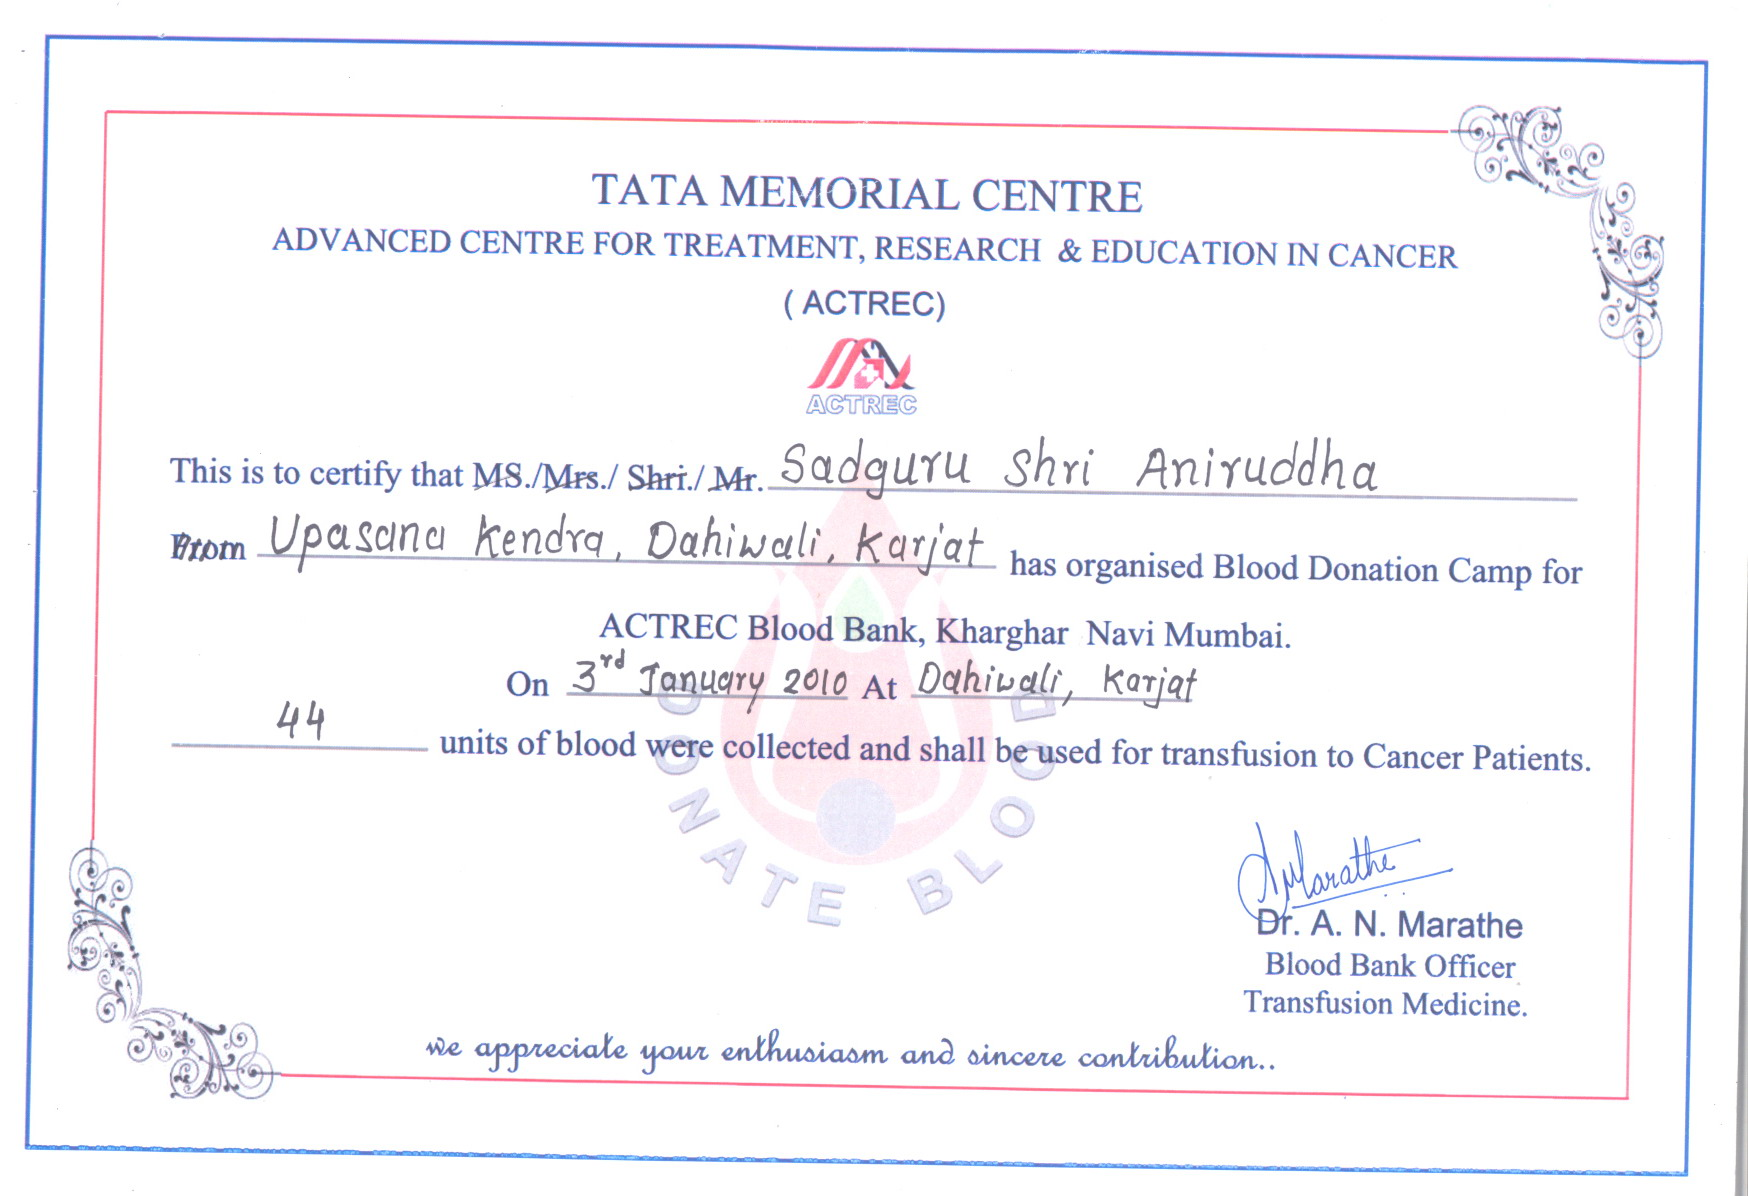 Appreciation letter blood donation camps shree aniruddha upasana appreciation letter from tata memorial hospital karjat 2010 for aniruddhafoundation compassion yelopaper Choice Image